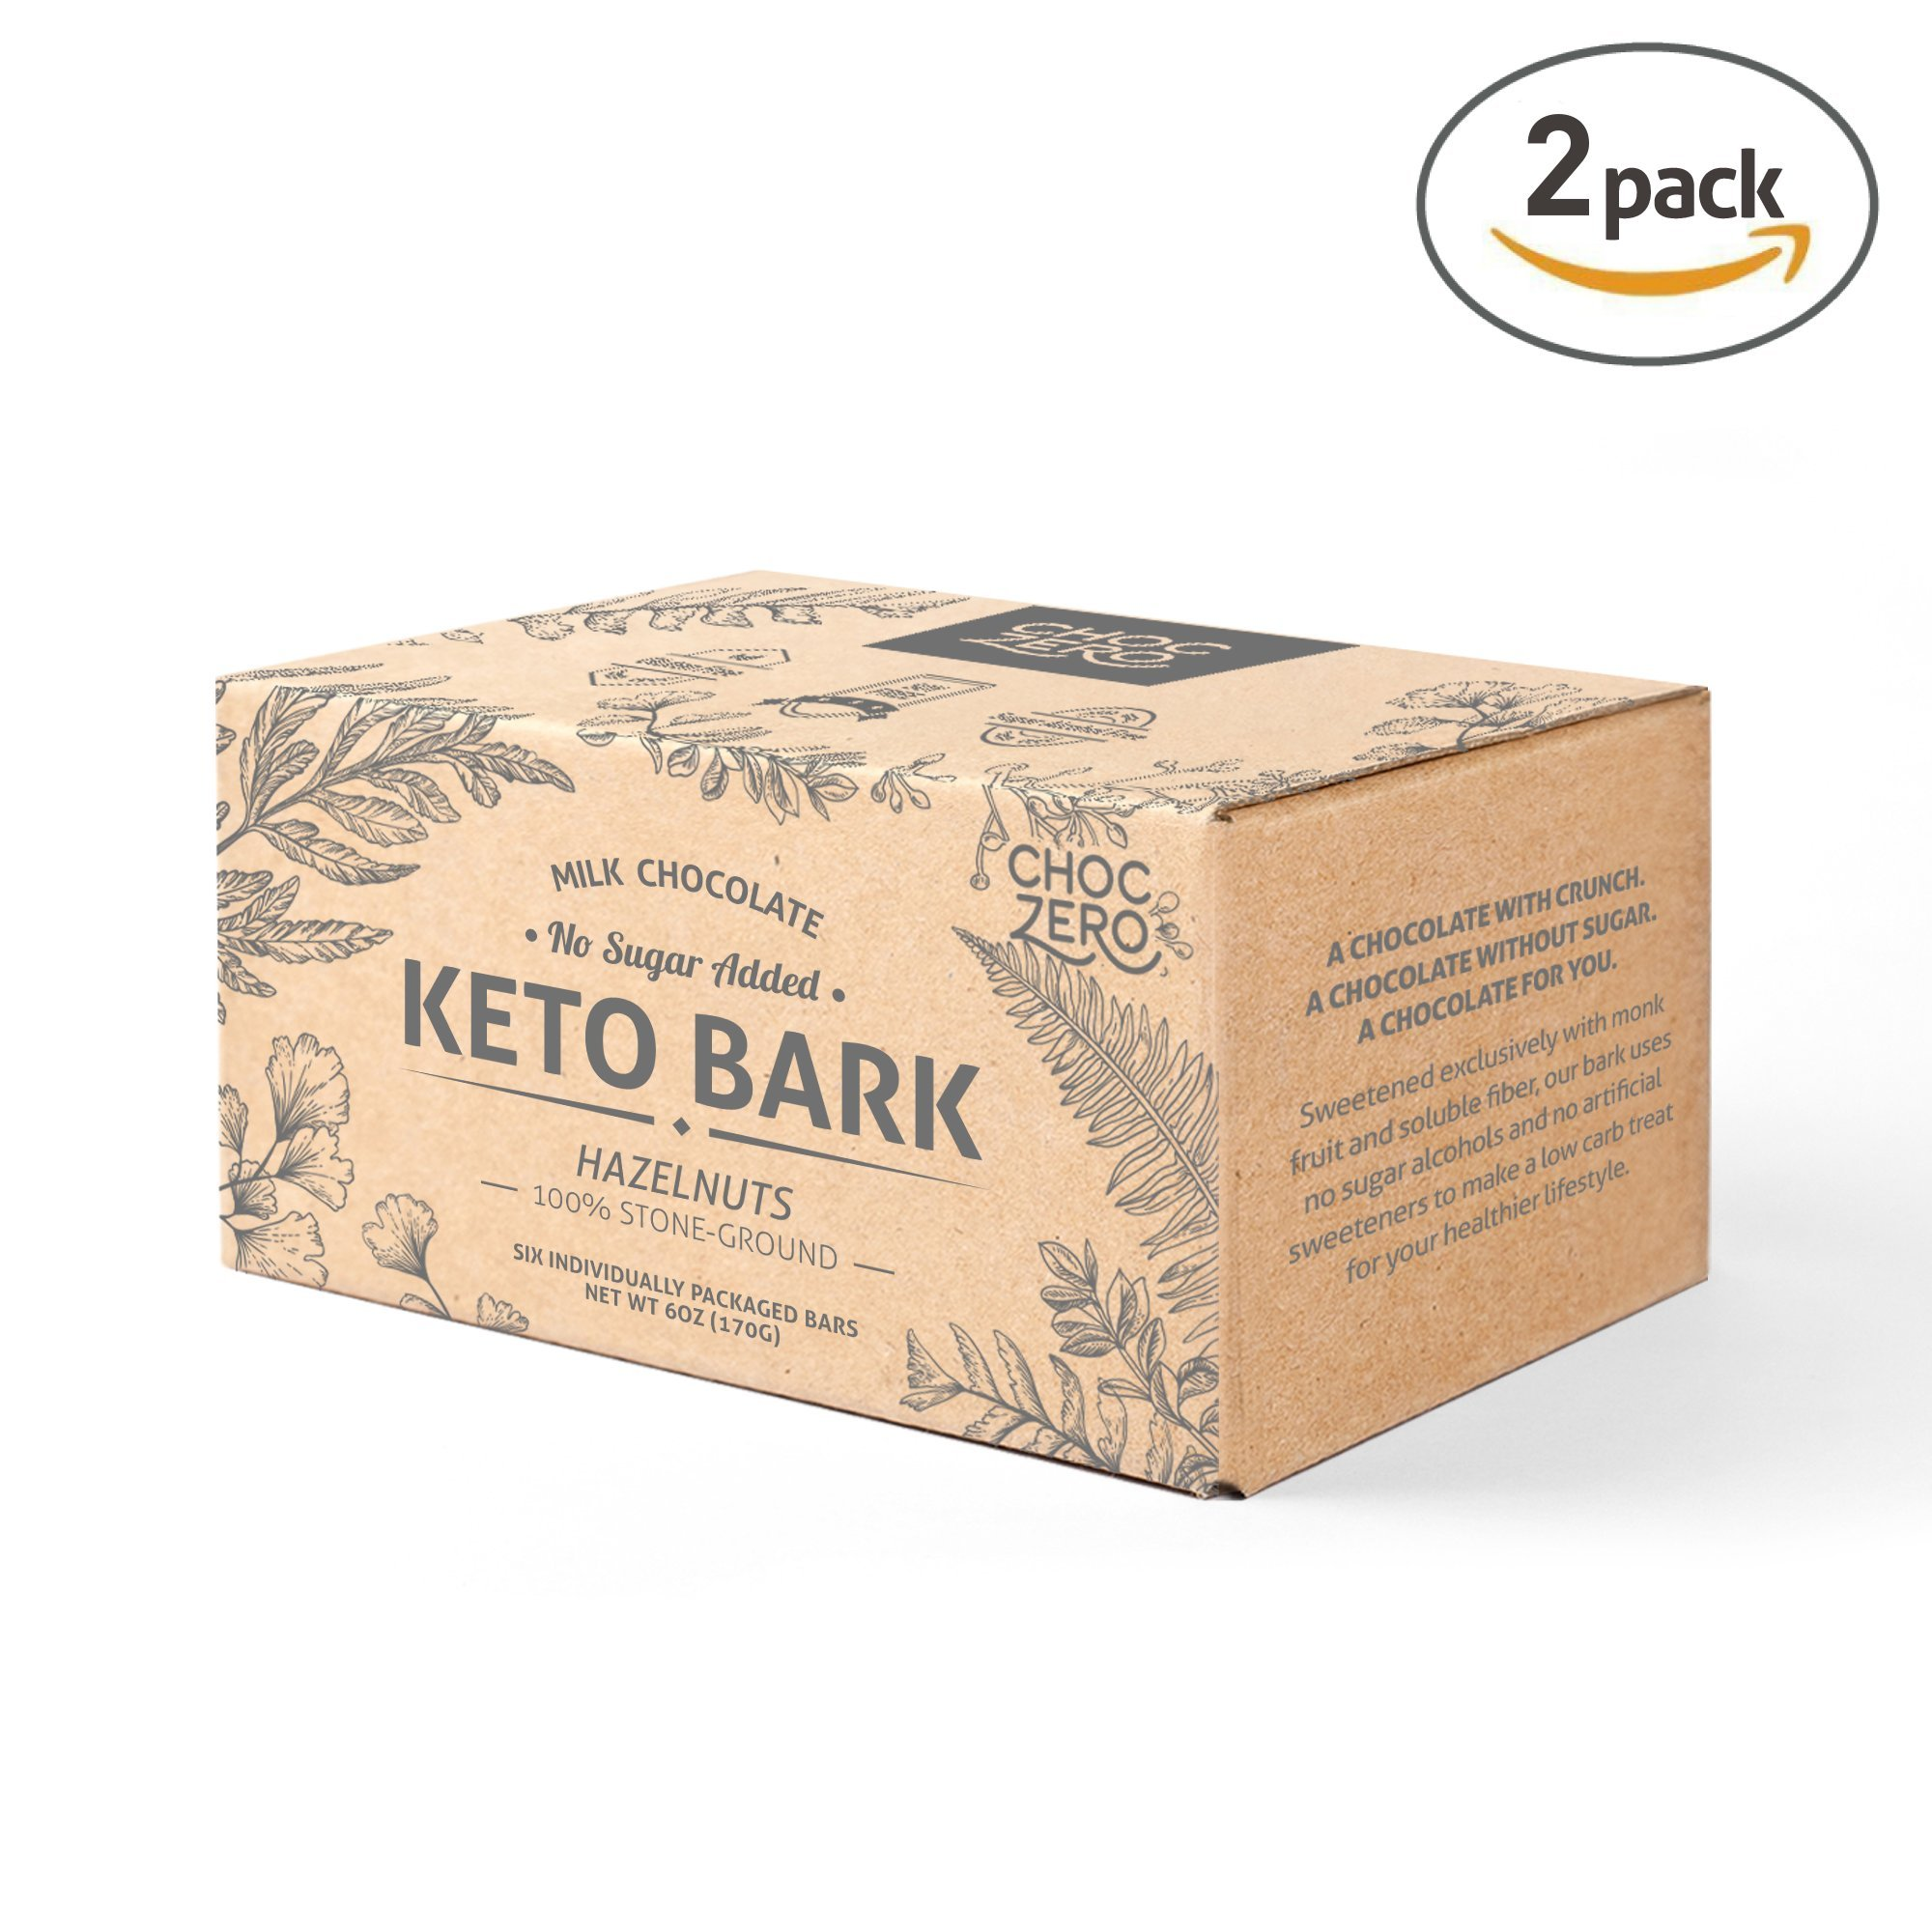 ChocZero's Keto Bark, Milk Chocolate Hazelnuts, 100% Stone-Ground, No Added Sugar, Low Carb, No Sugar Alcohols, Non-GMO (2 boxes, 6 bars/each)